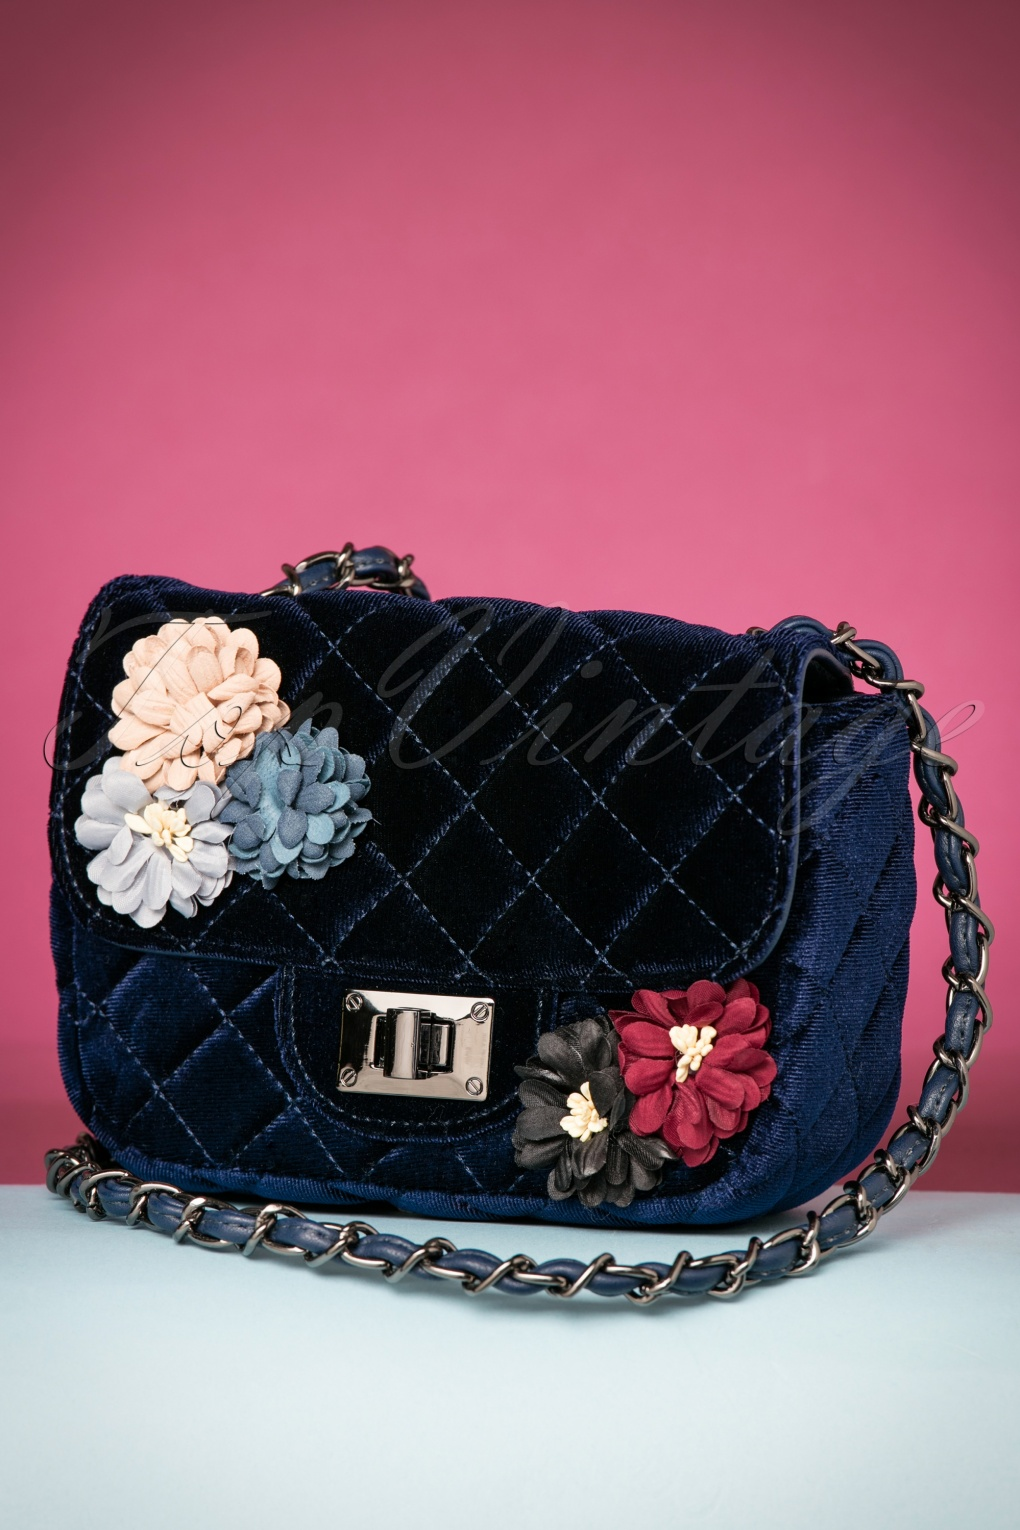 Vintage & Retro Handbags, Purses, Wallets, Bags 60s Quilted Floral Velvet Handbag in Royal Blue £18.62 AT vintagedancer.com